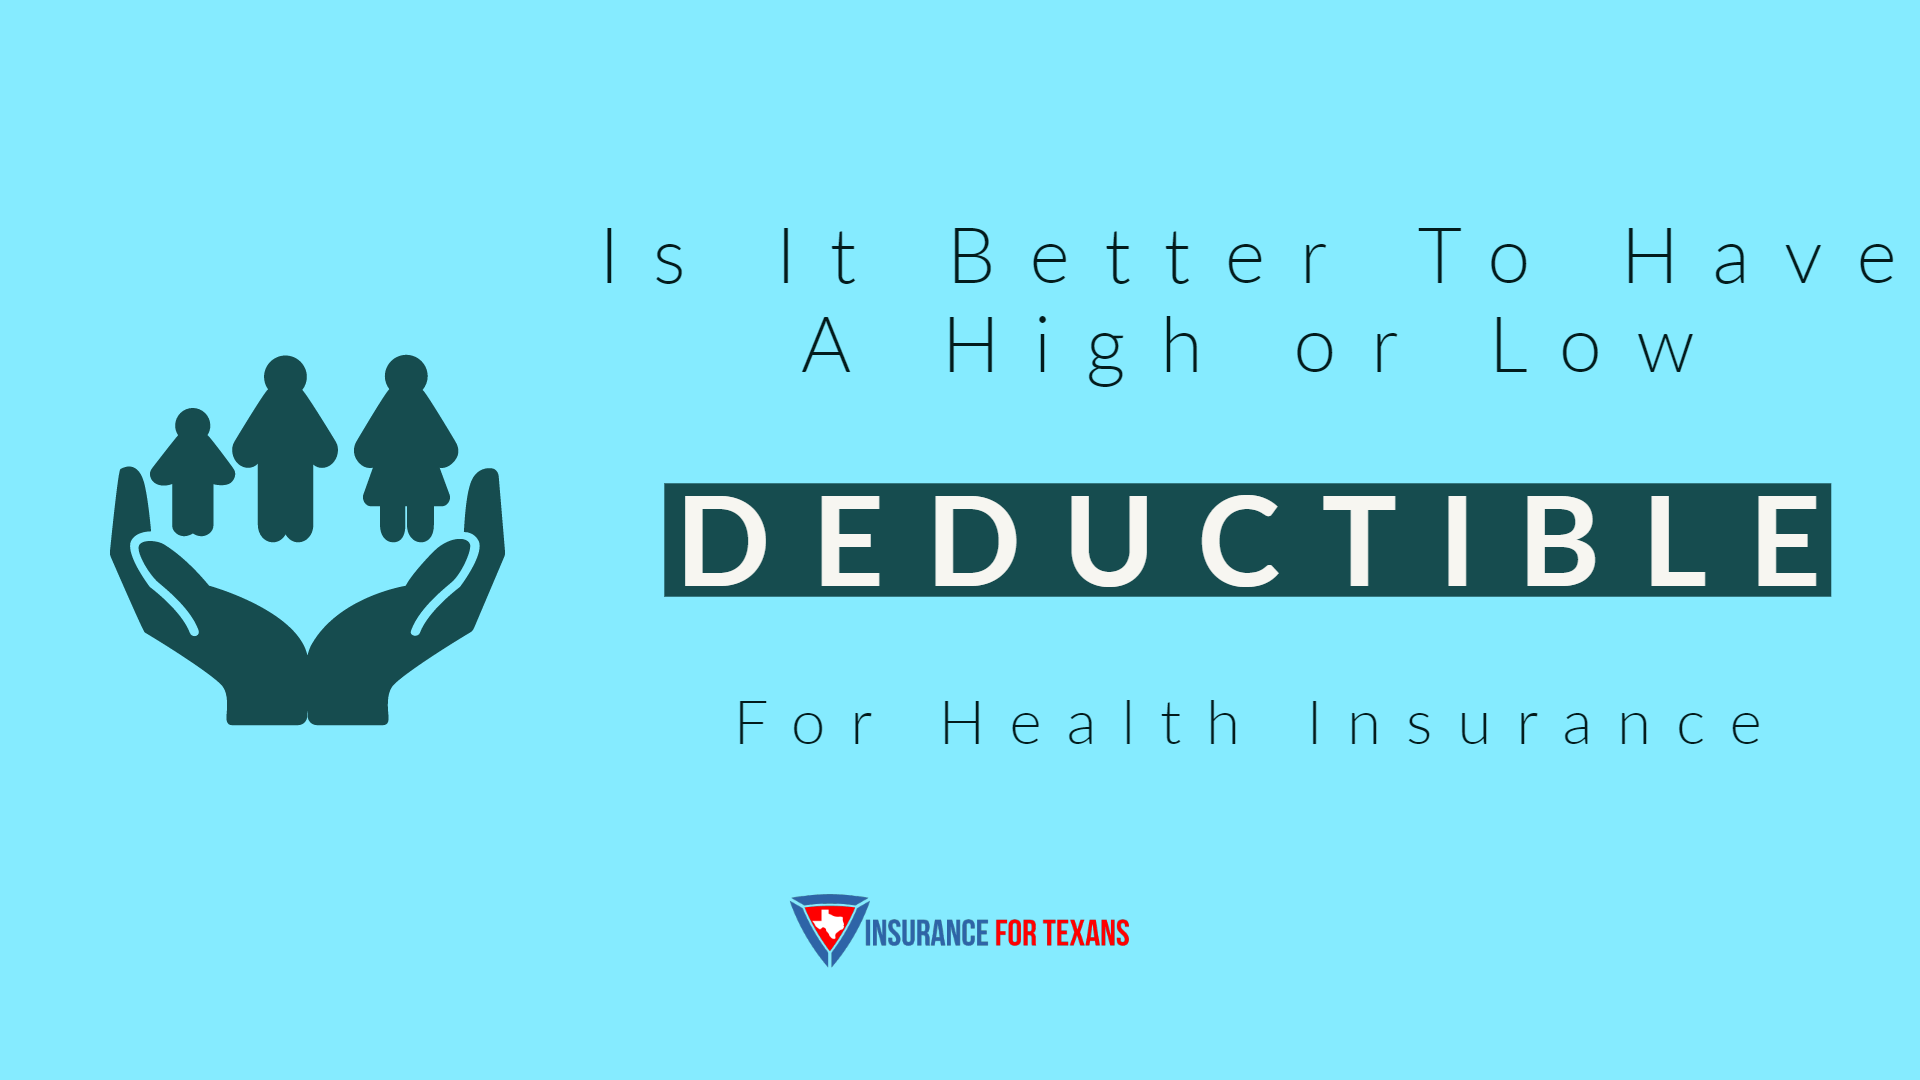 Is It Better To Have A High Or Low Deductible For Health Insurance